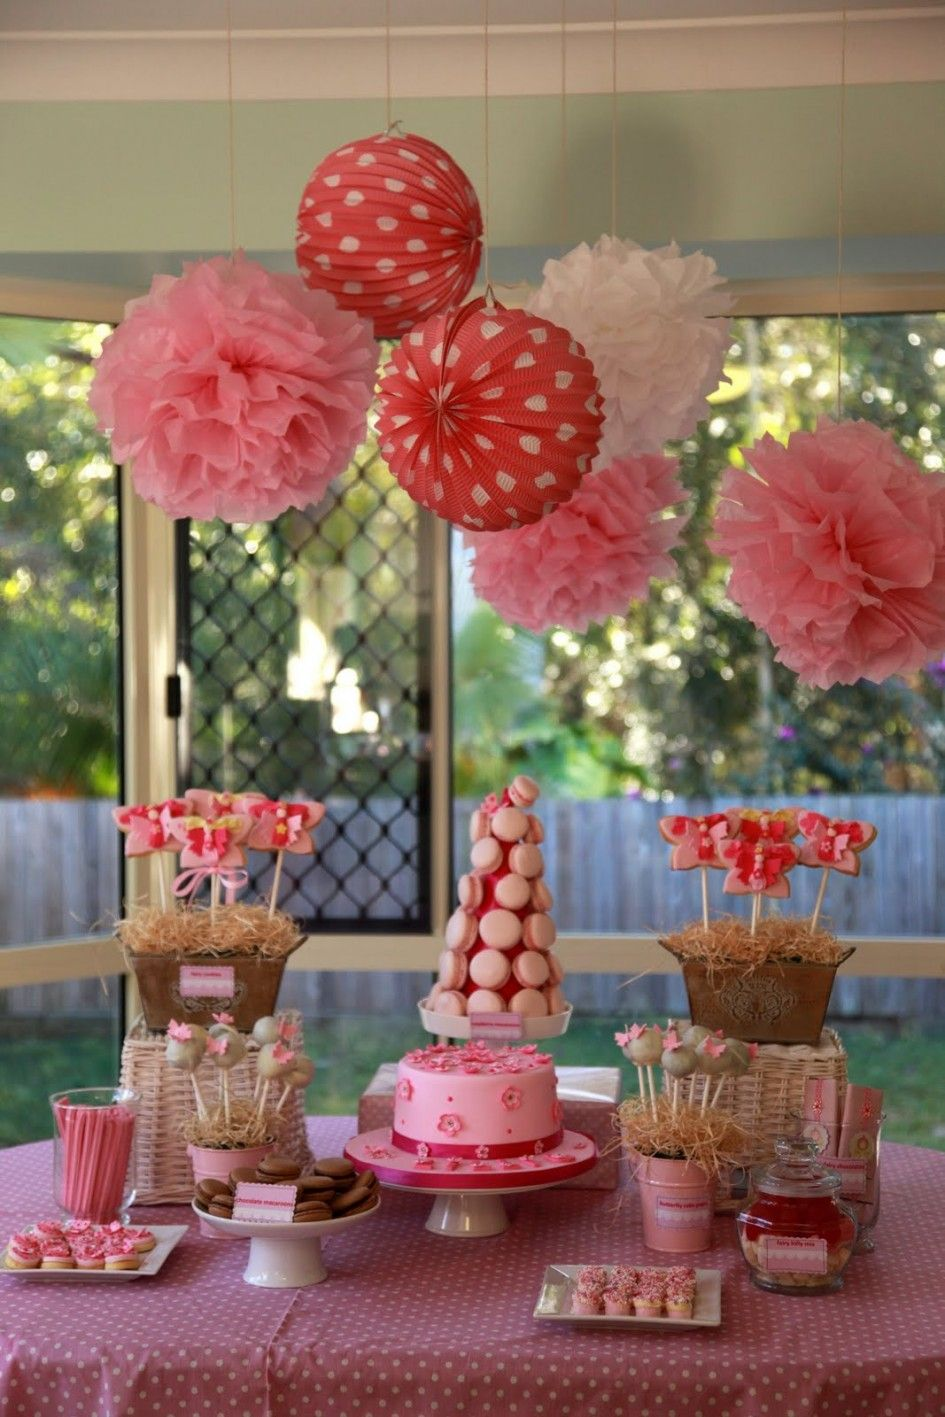 Simple birthday table decoration ideas - Inspiring Ideas For Stunning Table Decorations For Birthdays Excellent Decorations Design Wonderful Pink Table